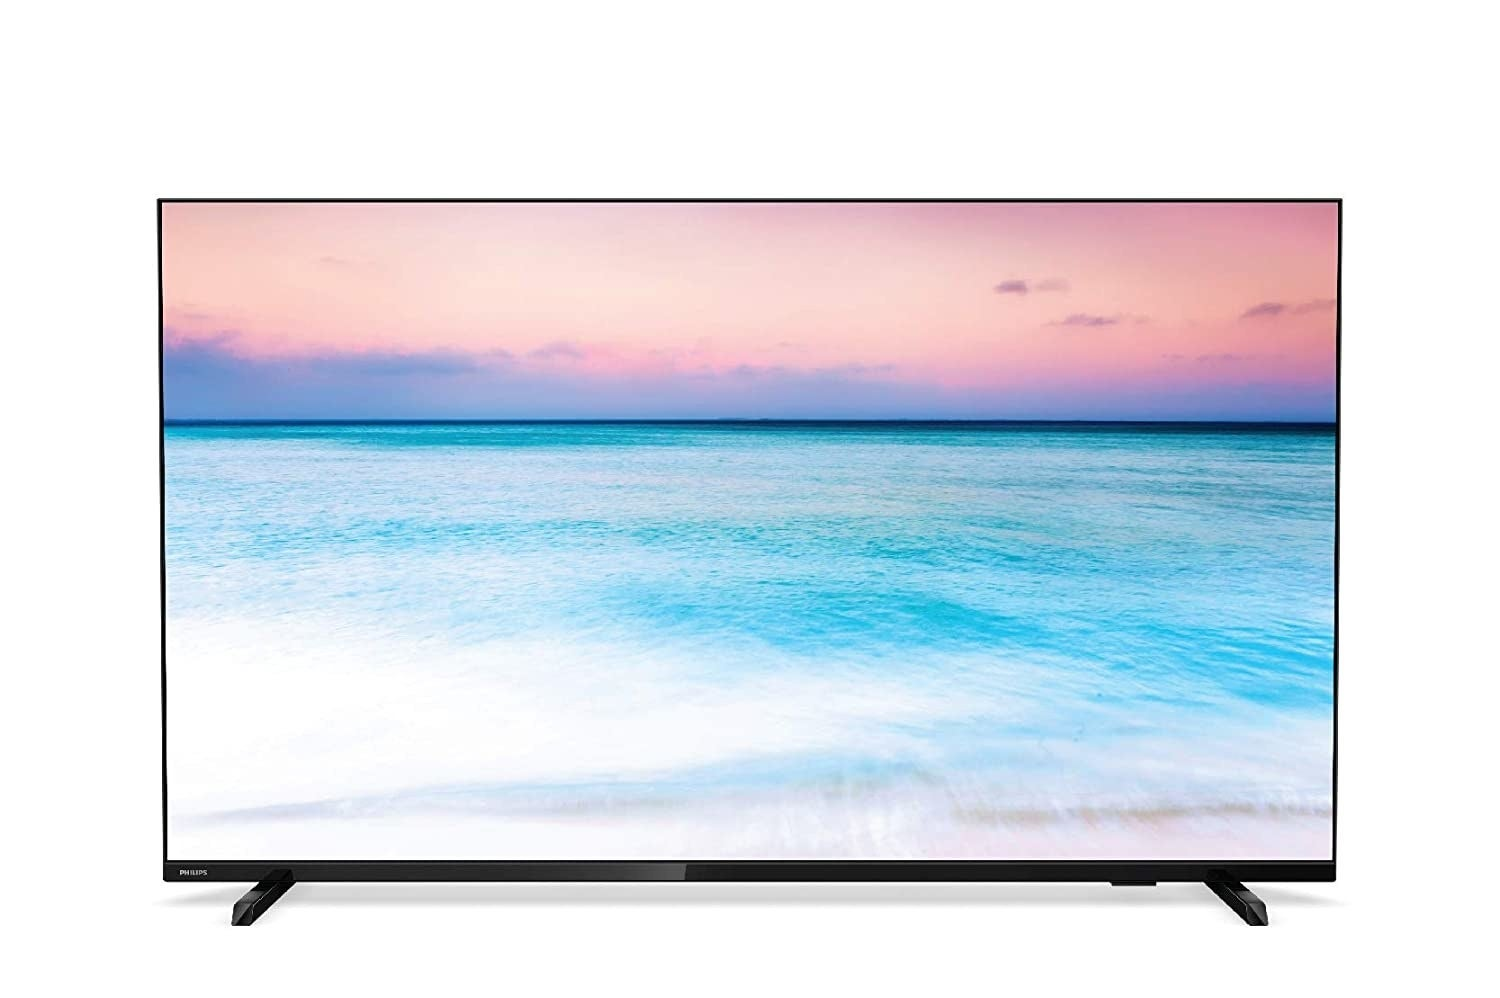 A Philips 6600 Series 4K Ultra HD LED Smart TV in black.